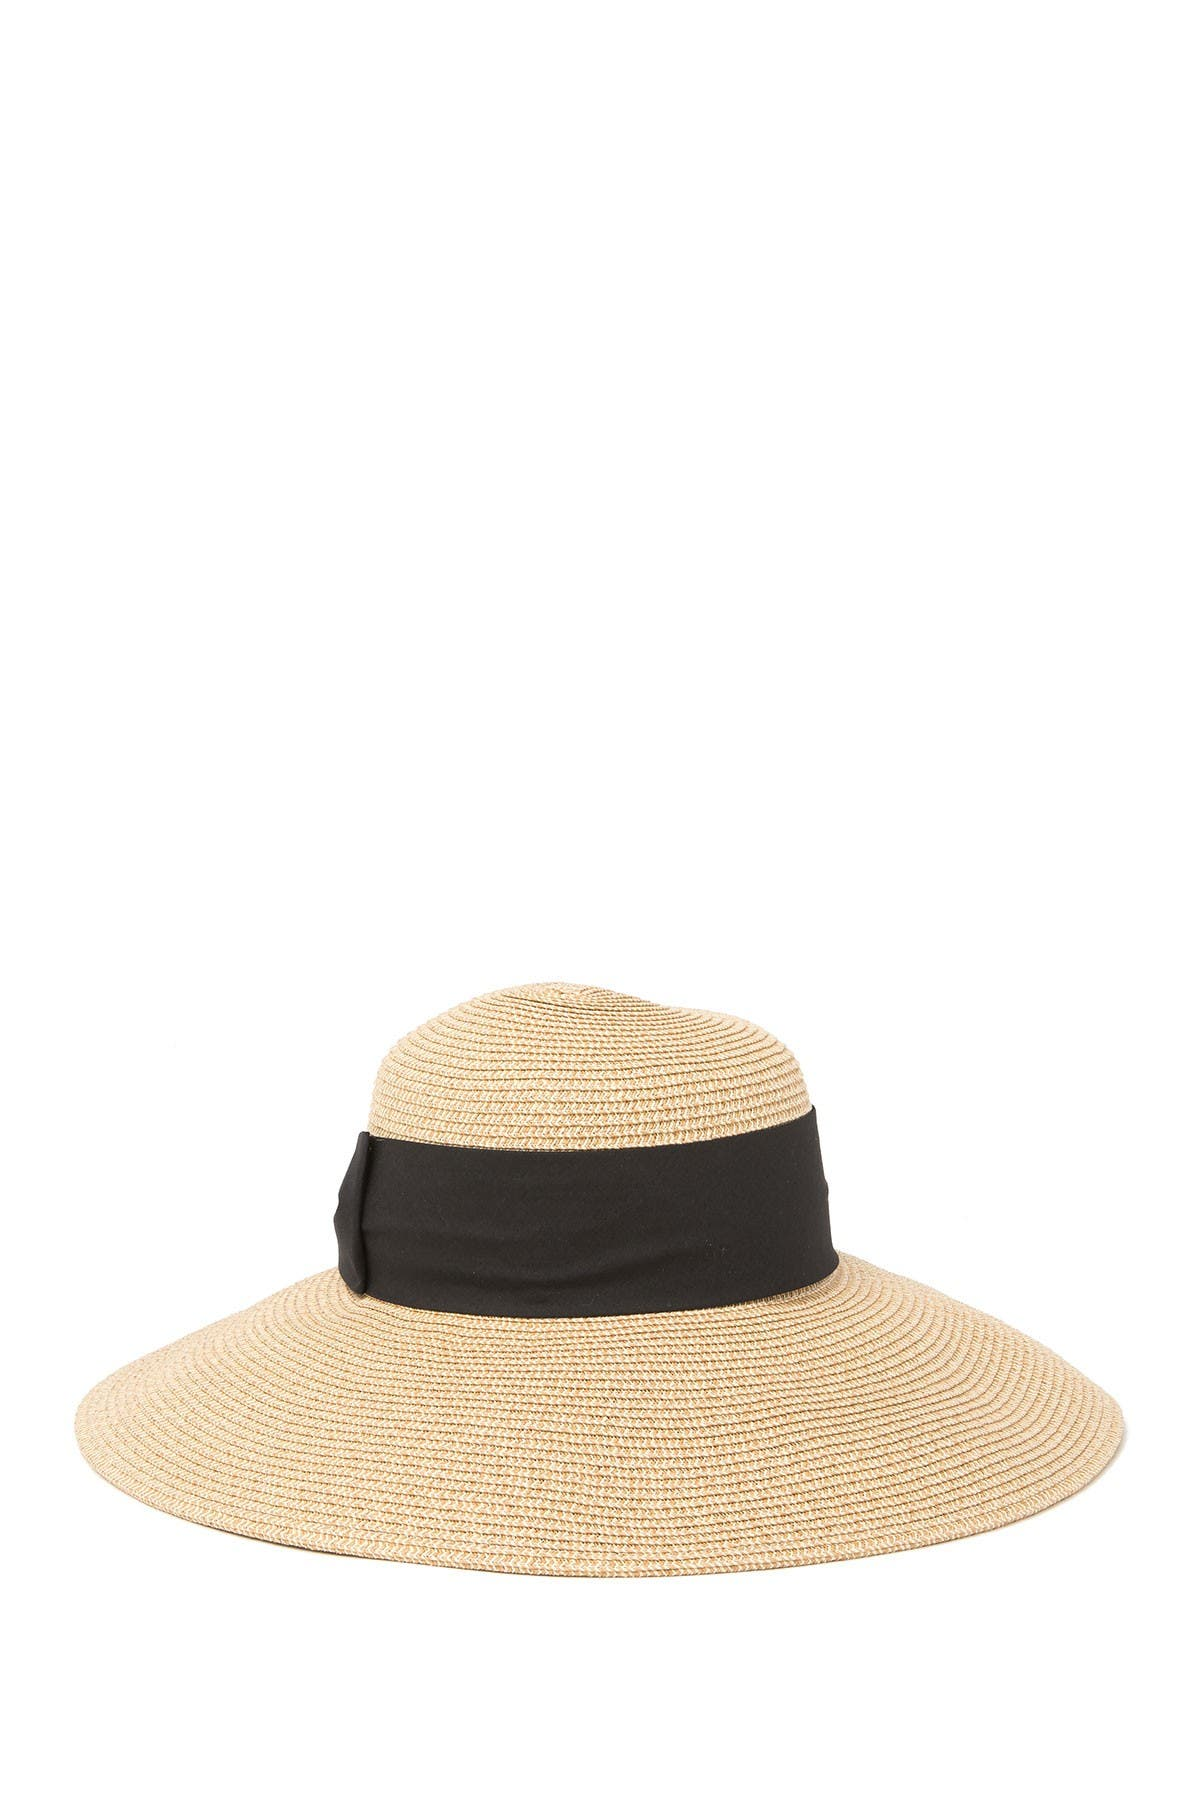 Image of Nordstrom Rack Floppy Bow Sun Hat